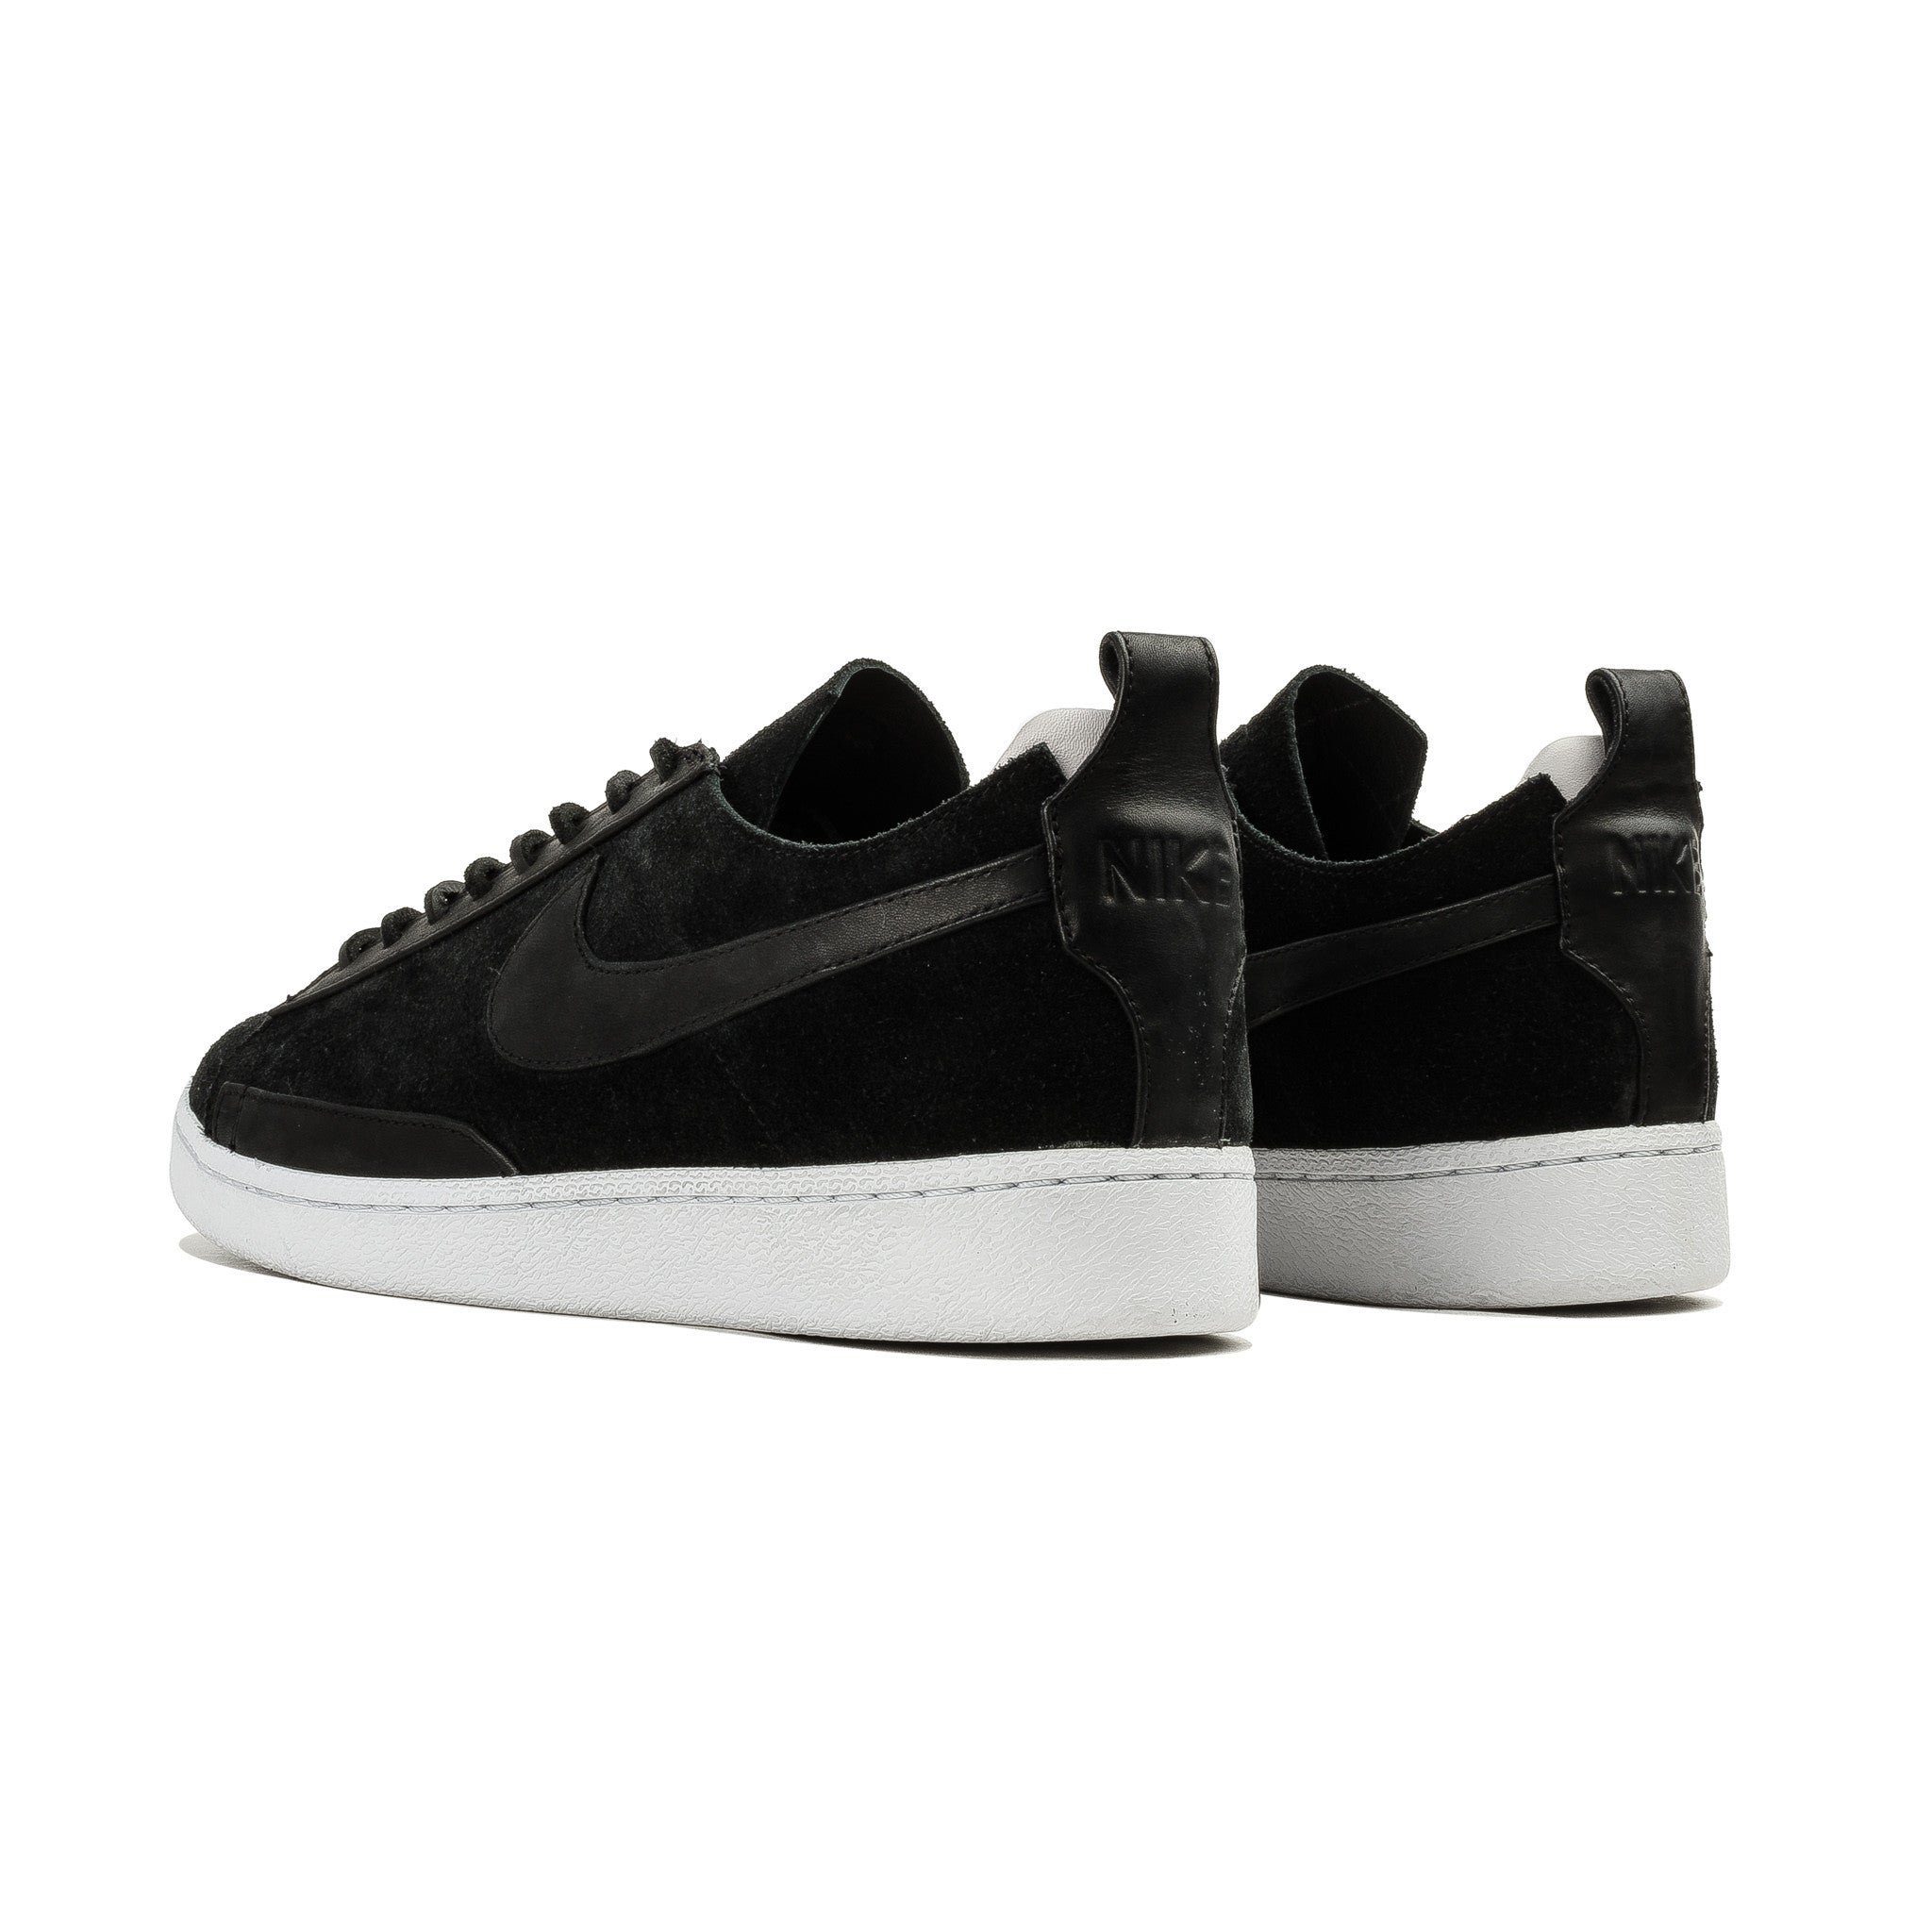 buy popular 89e0f a00d0 Nike Blazer Low Cs Tcgplayer vraiment pas cher sortie sortie en Chine sites  de dédouanement YpFmZ